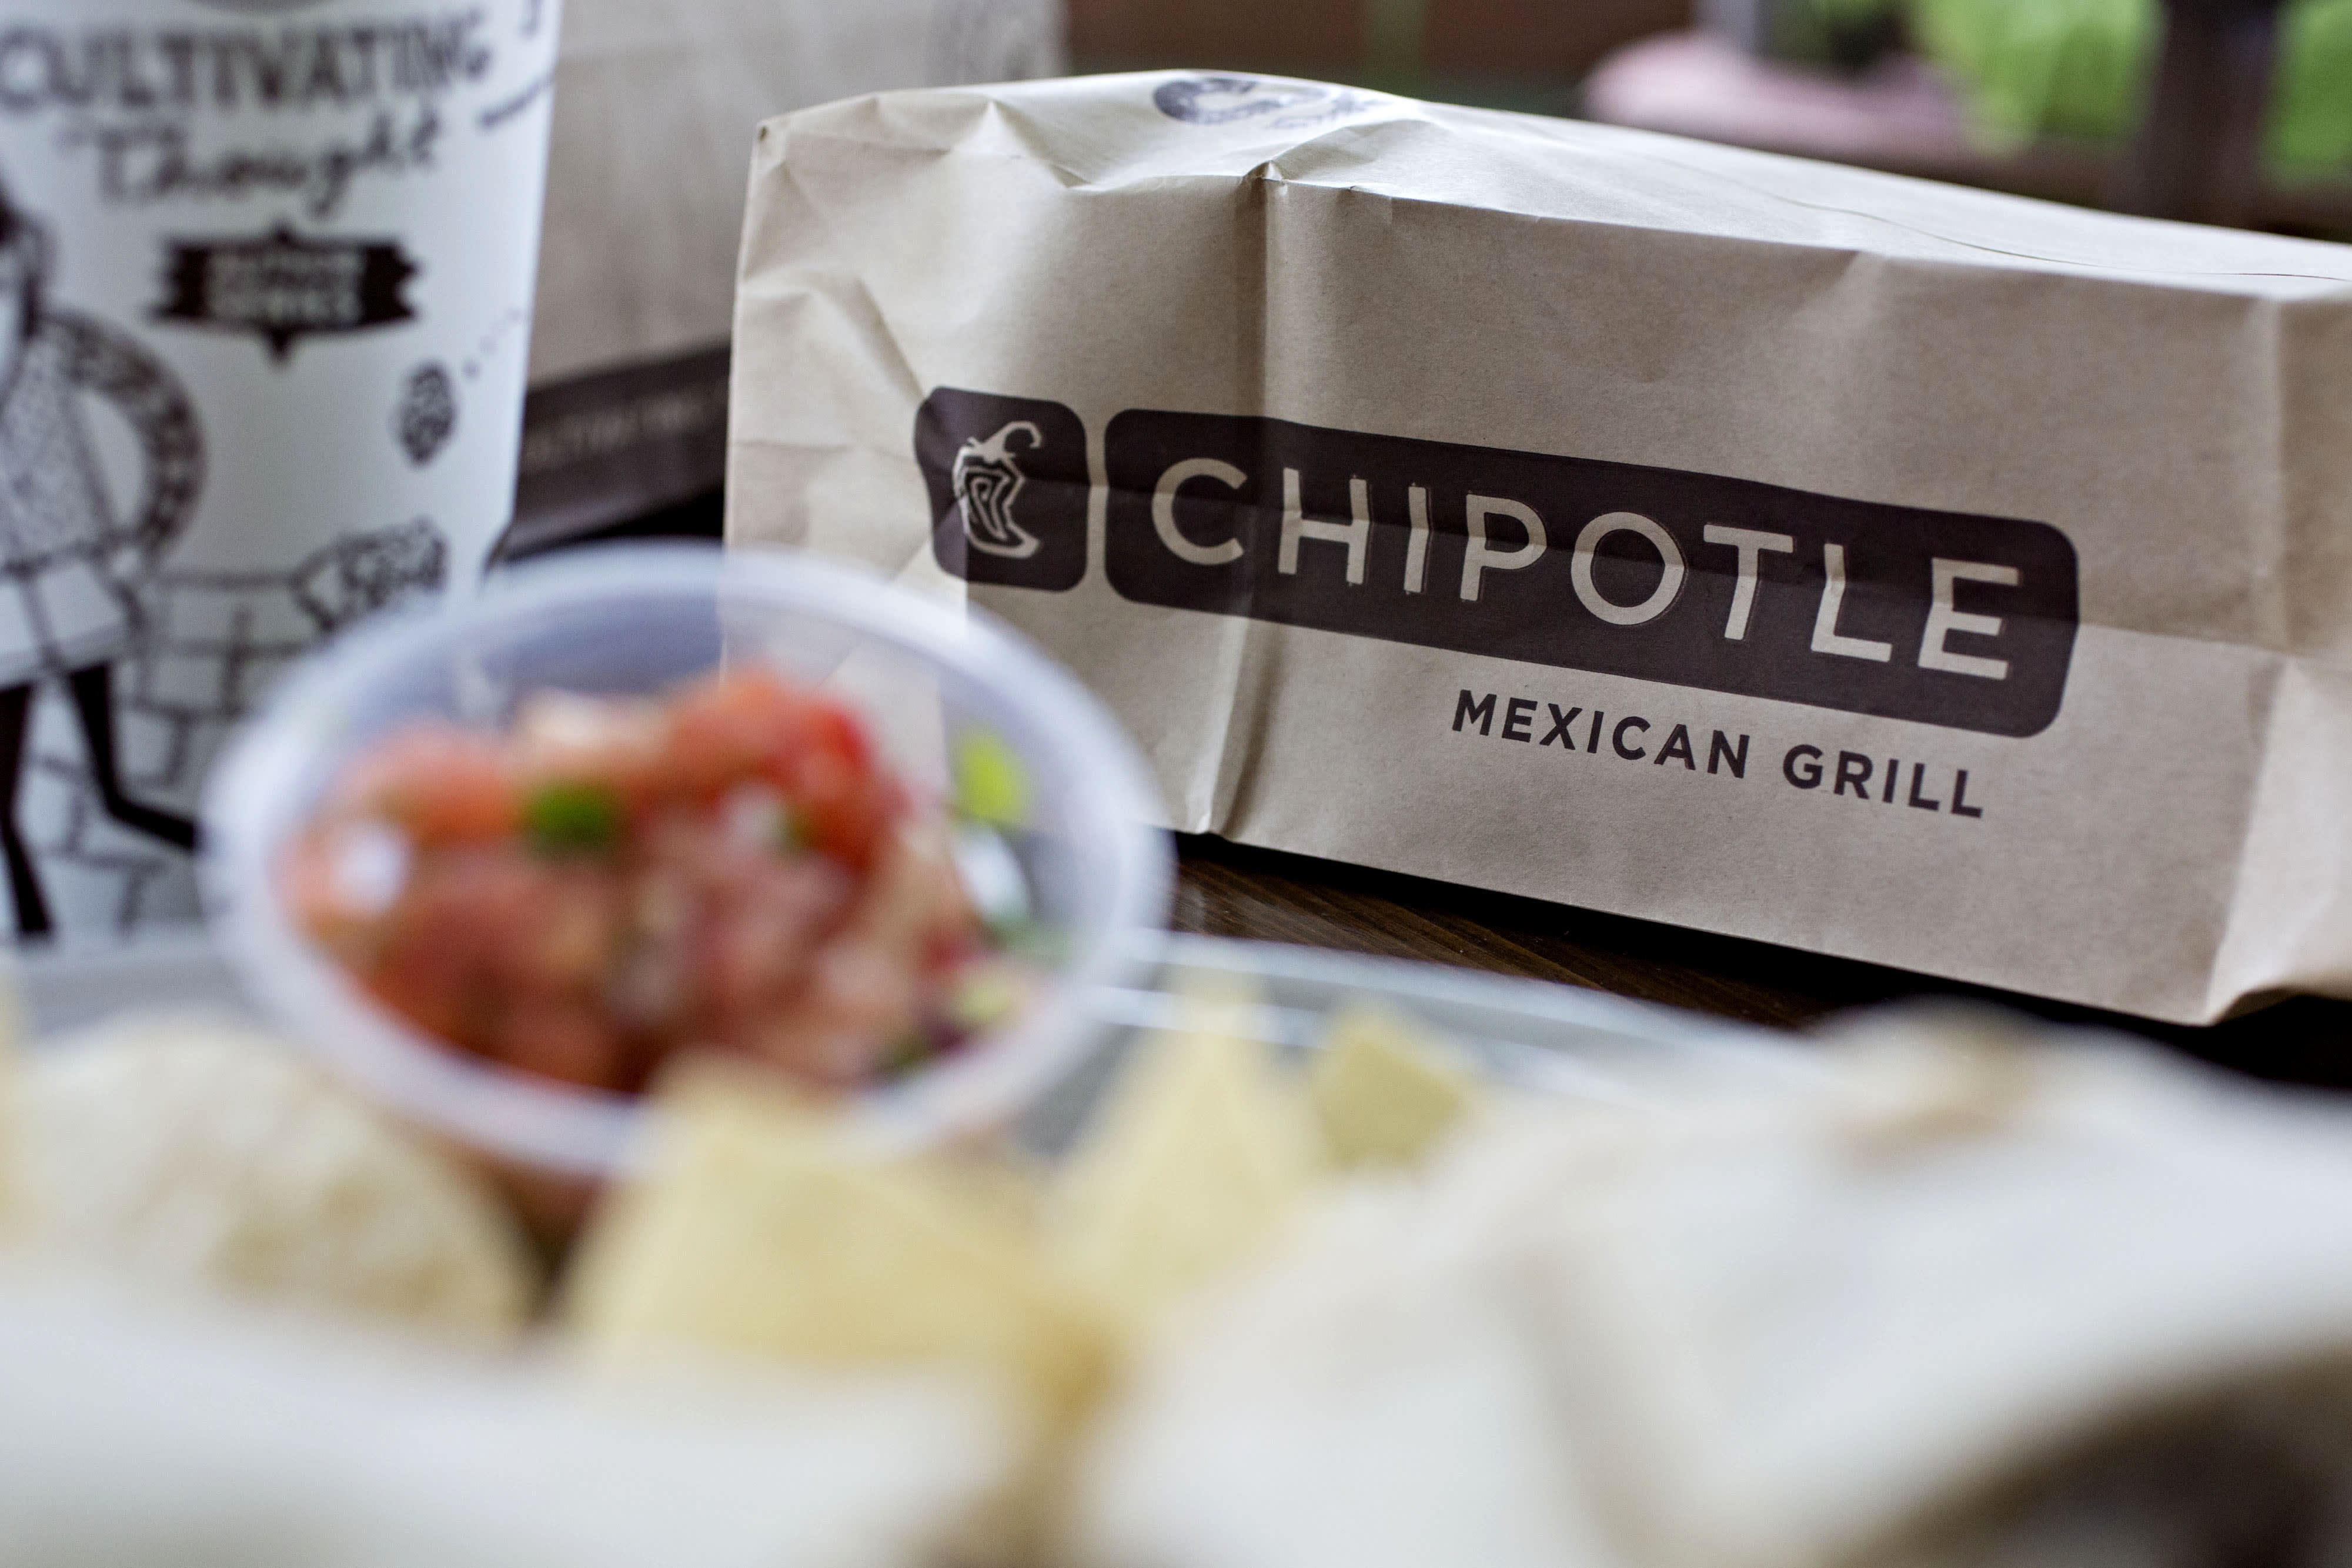 Chipotle Shares Tank After Company Admits It Will Need To Spend More